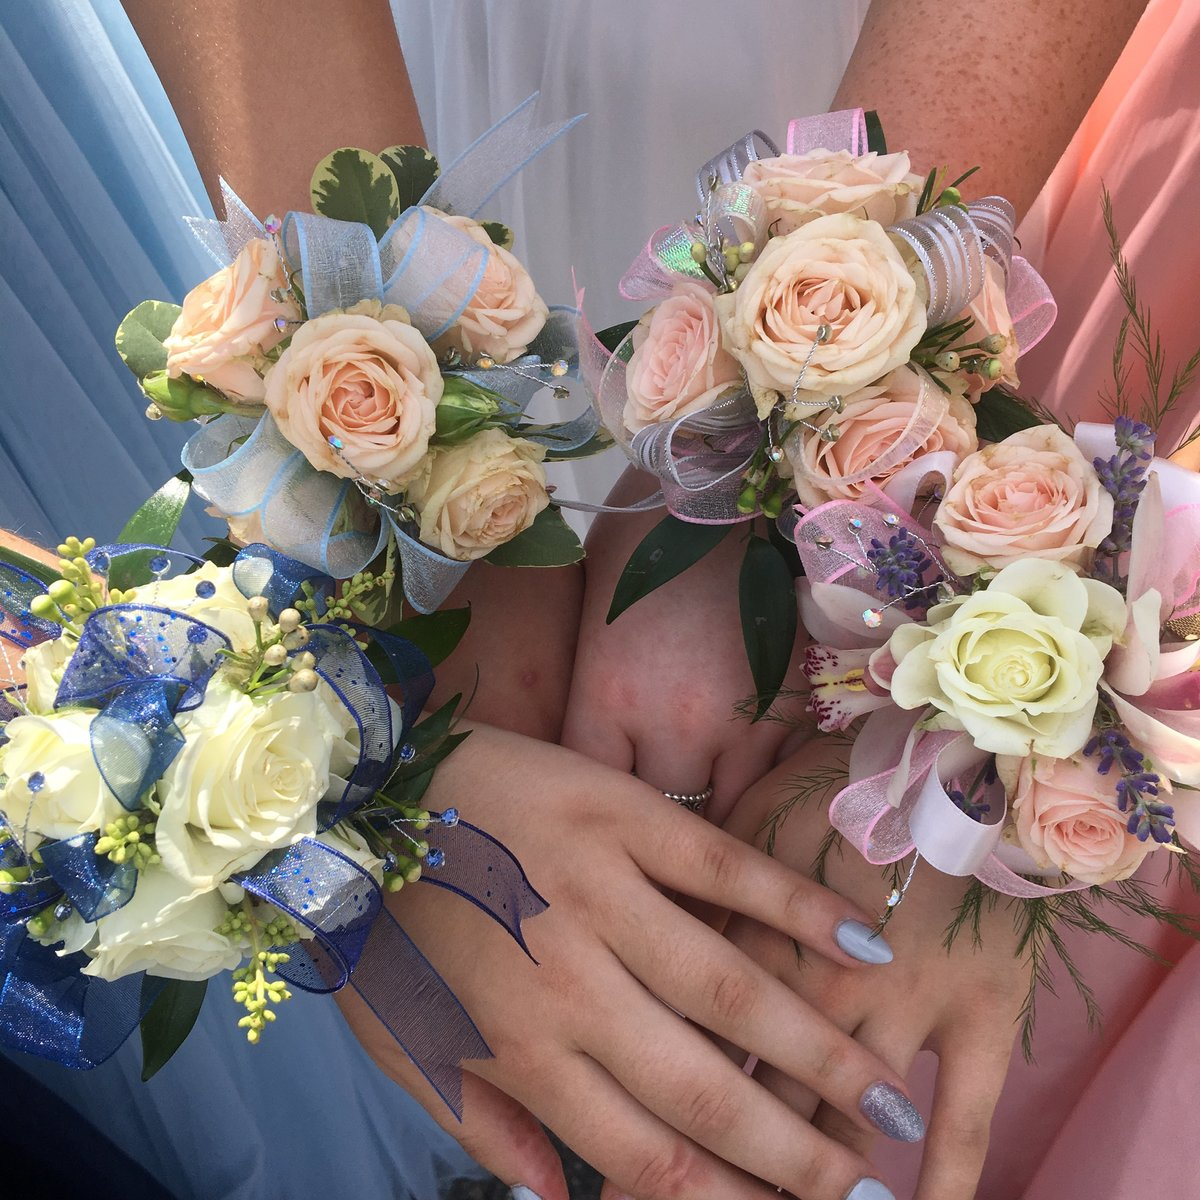 Rose slap band wrist corsages